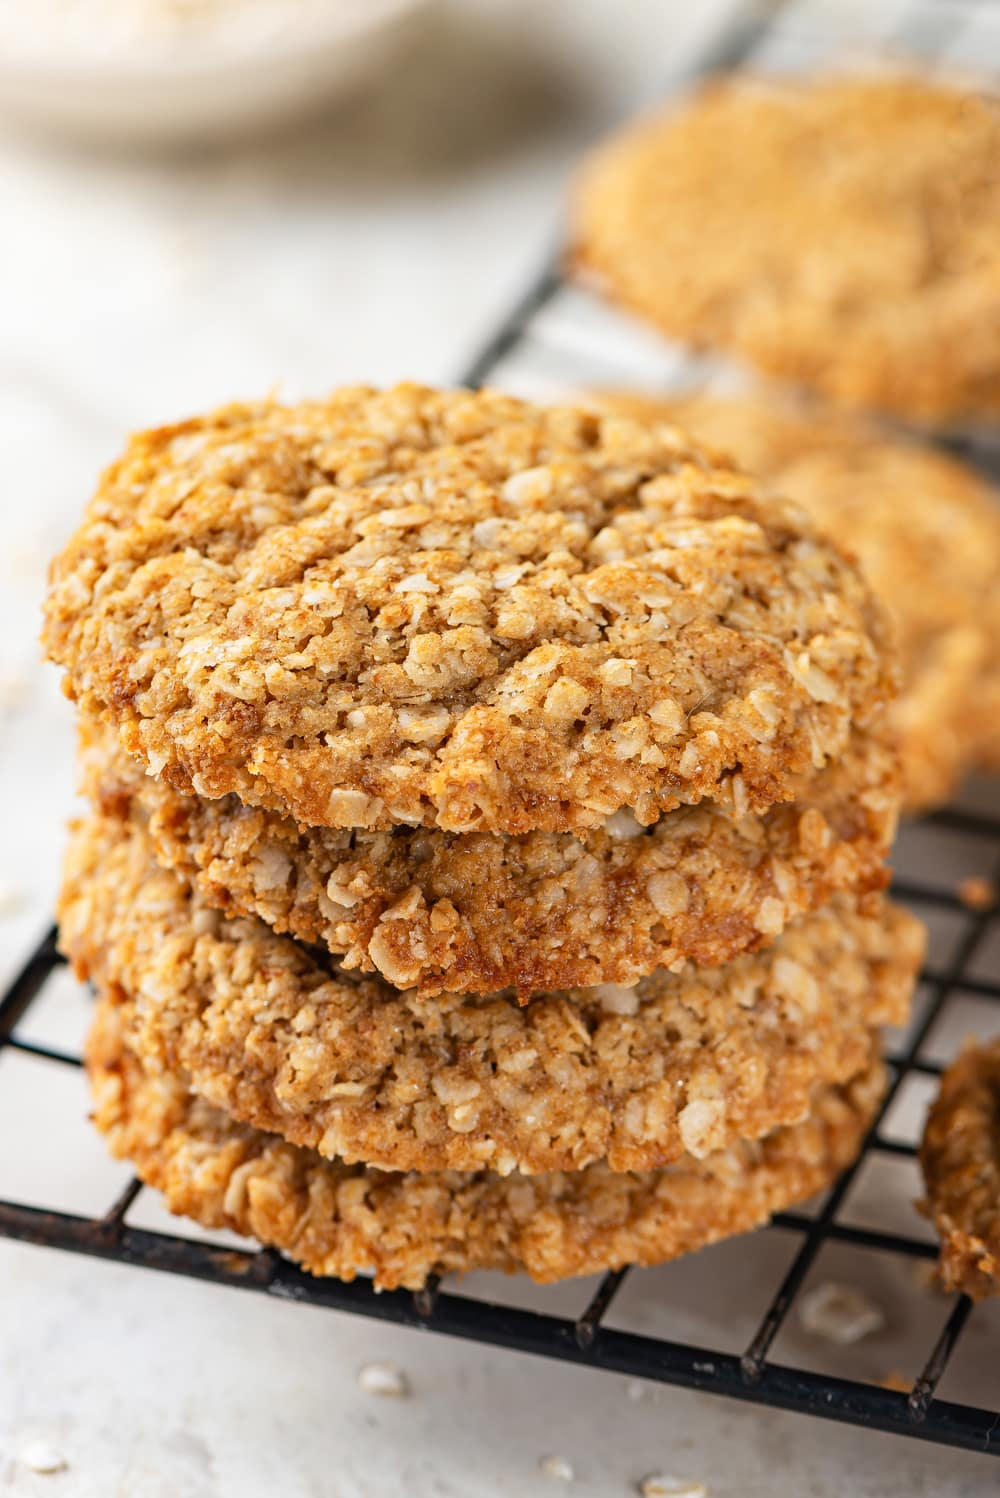 Four vegan oatmeal cookies stacked on top of each other on a black wire rack. There are two oatmeal cookies on the rack behind the stack of cookies. The wire rack is on a white counter.